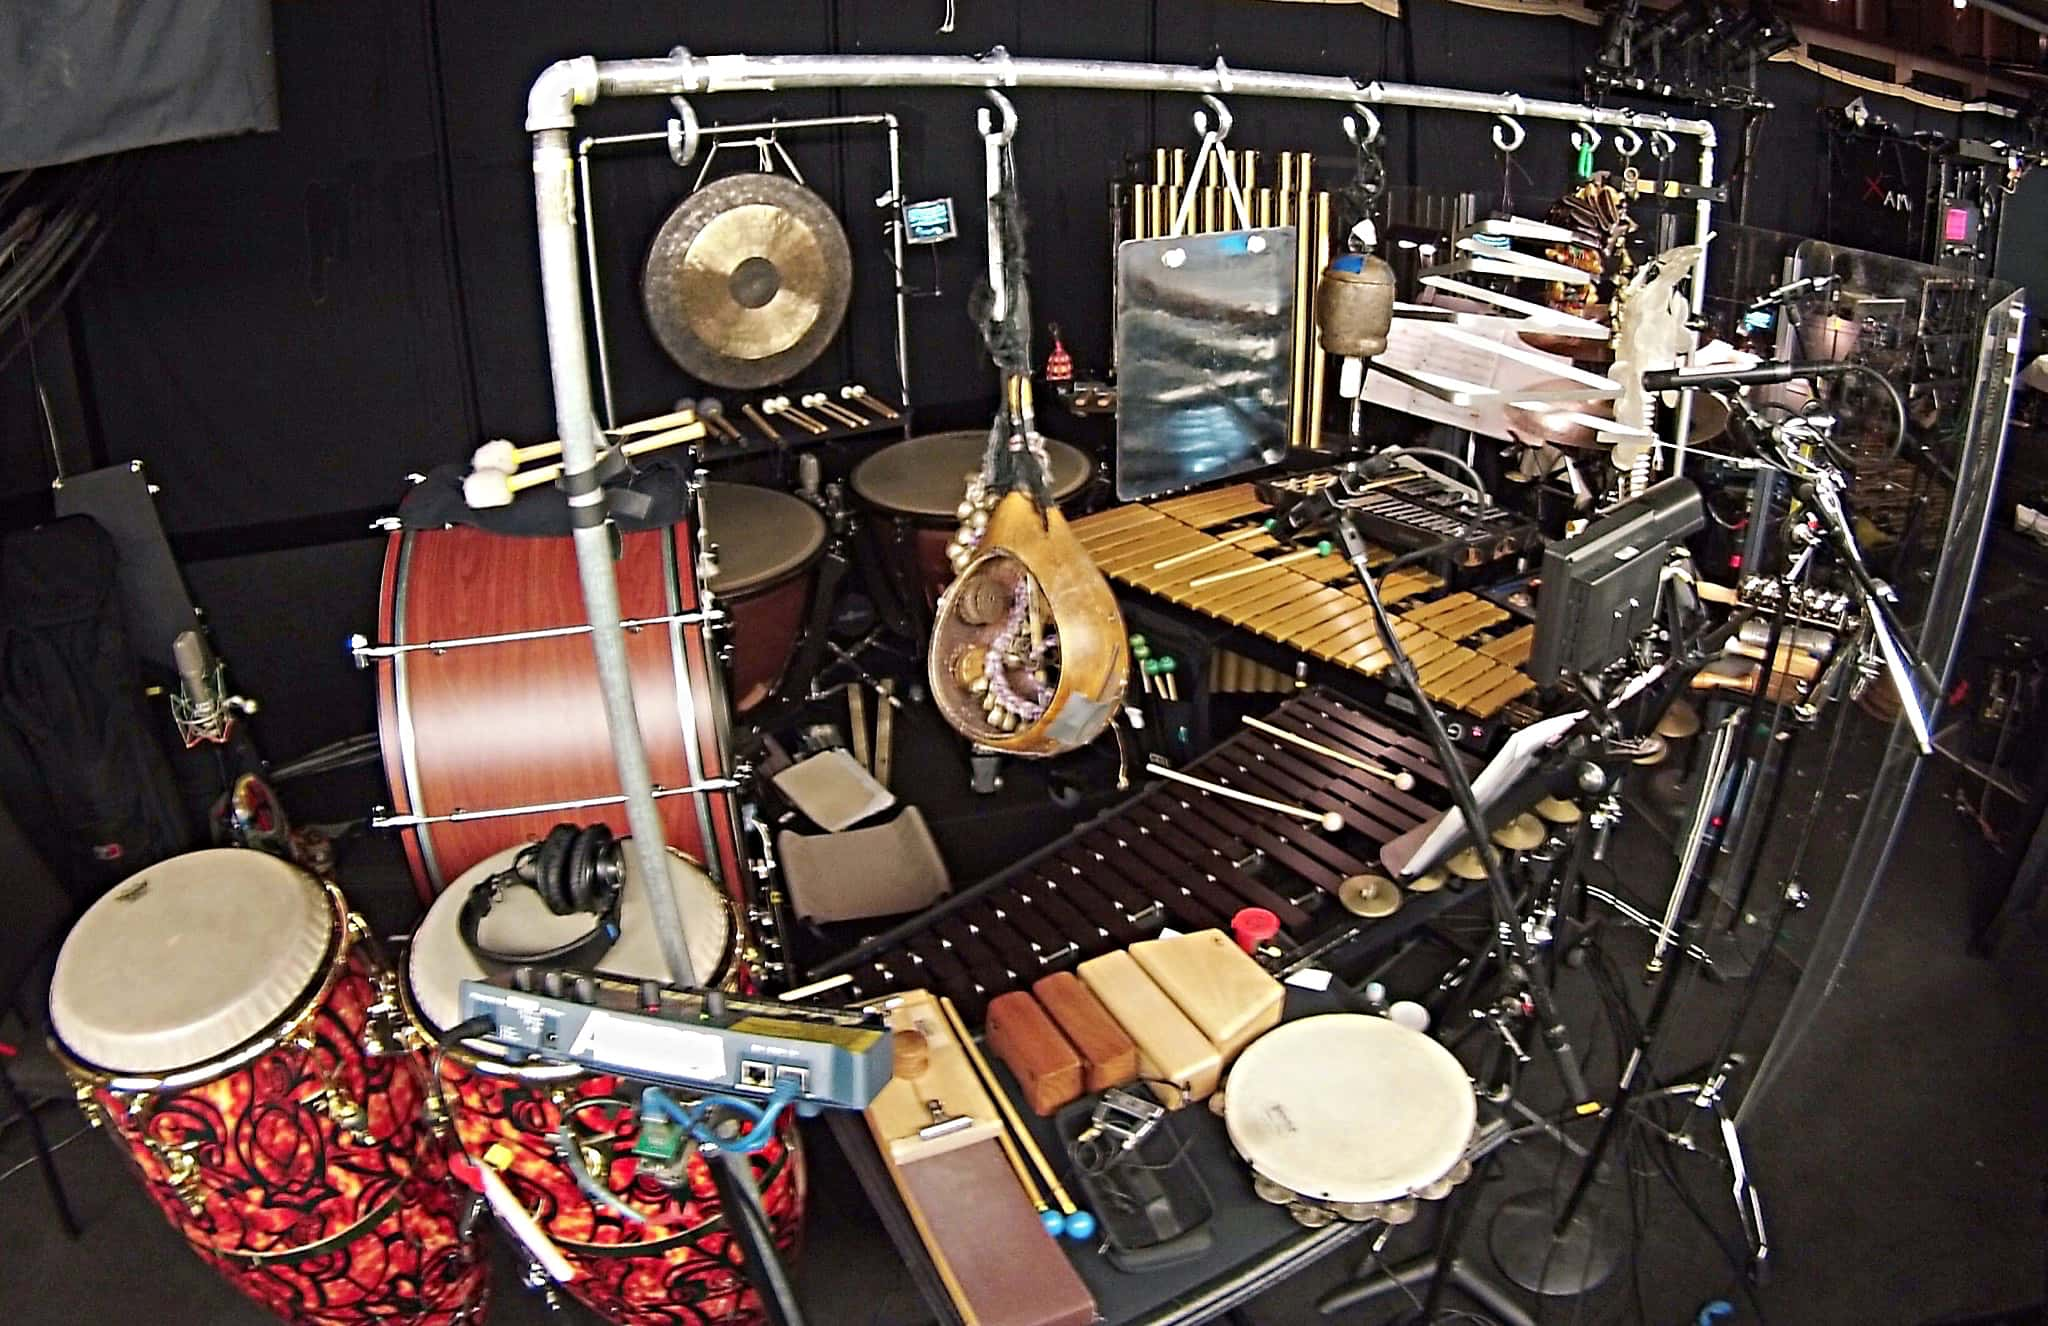 Alex Stopa's percussion setup for Wicked at The Smith Center in Las Vegas, Nevada.